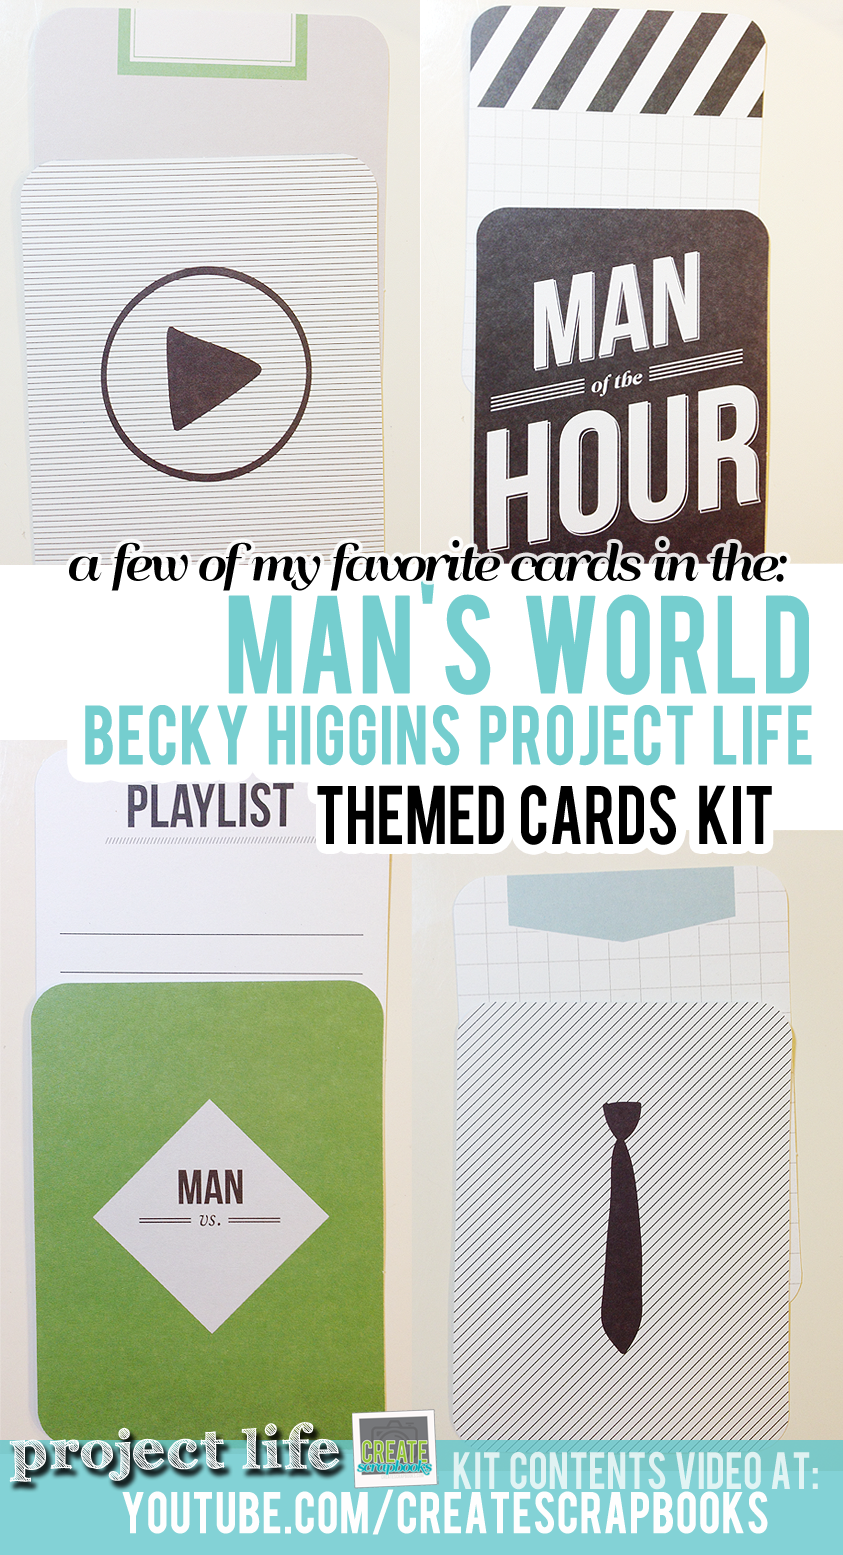 CreateScrapbooks.com My favorite cards in the Project Life Man's World Themed Card Set by Becky Higgins